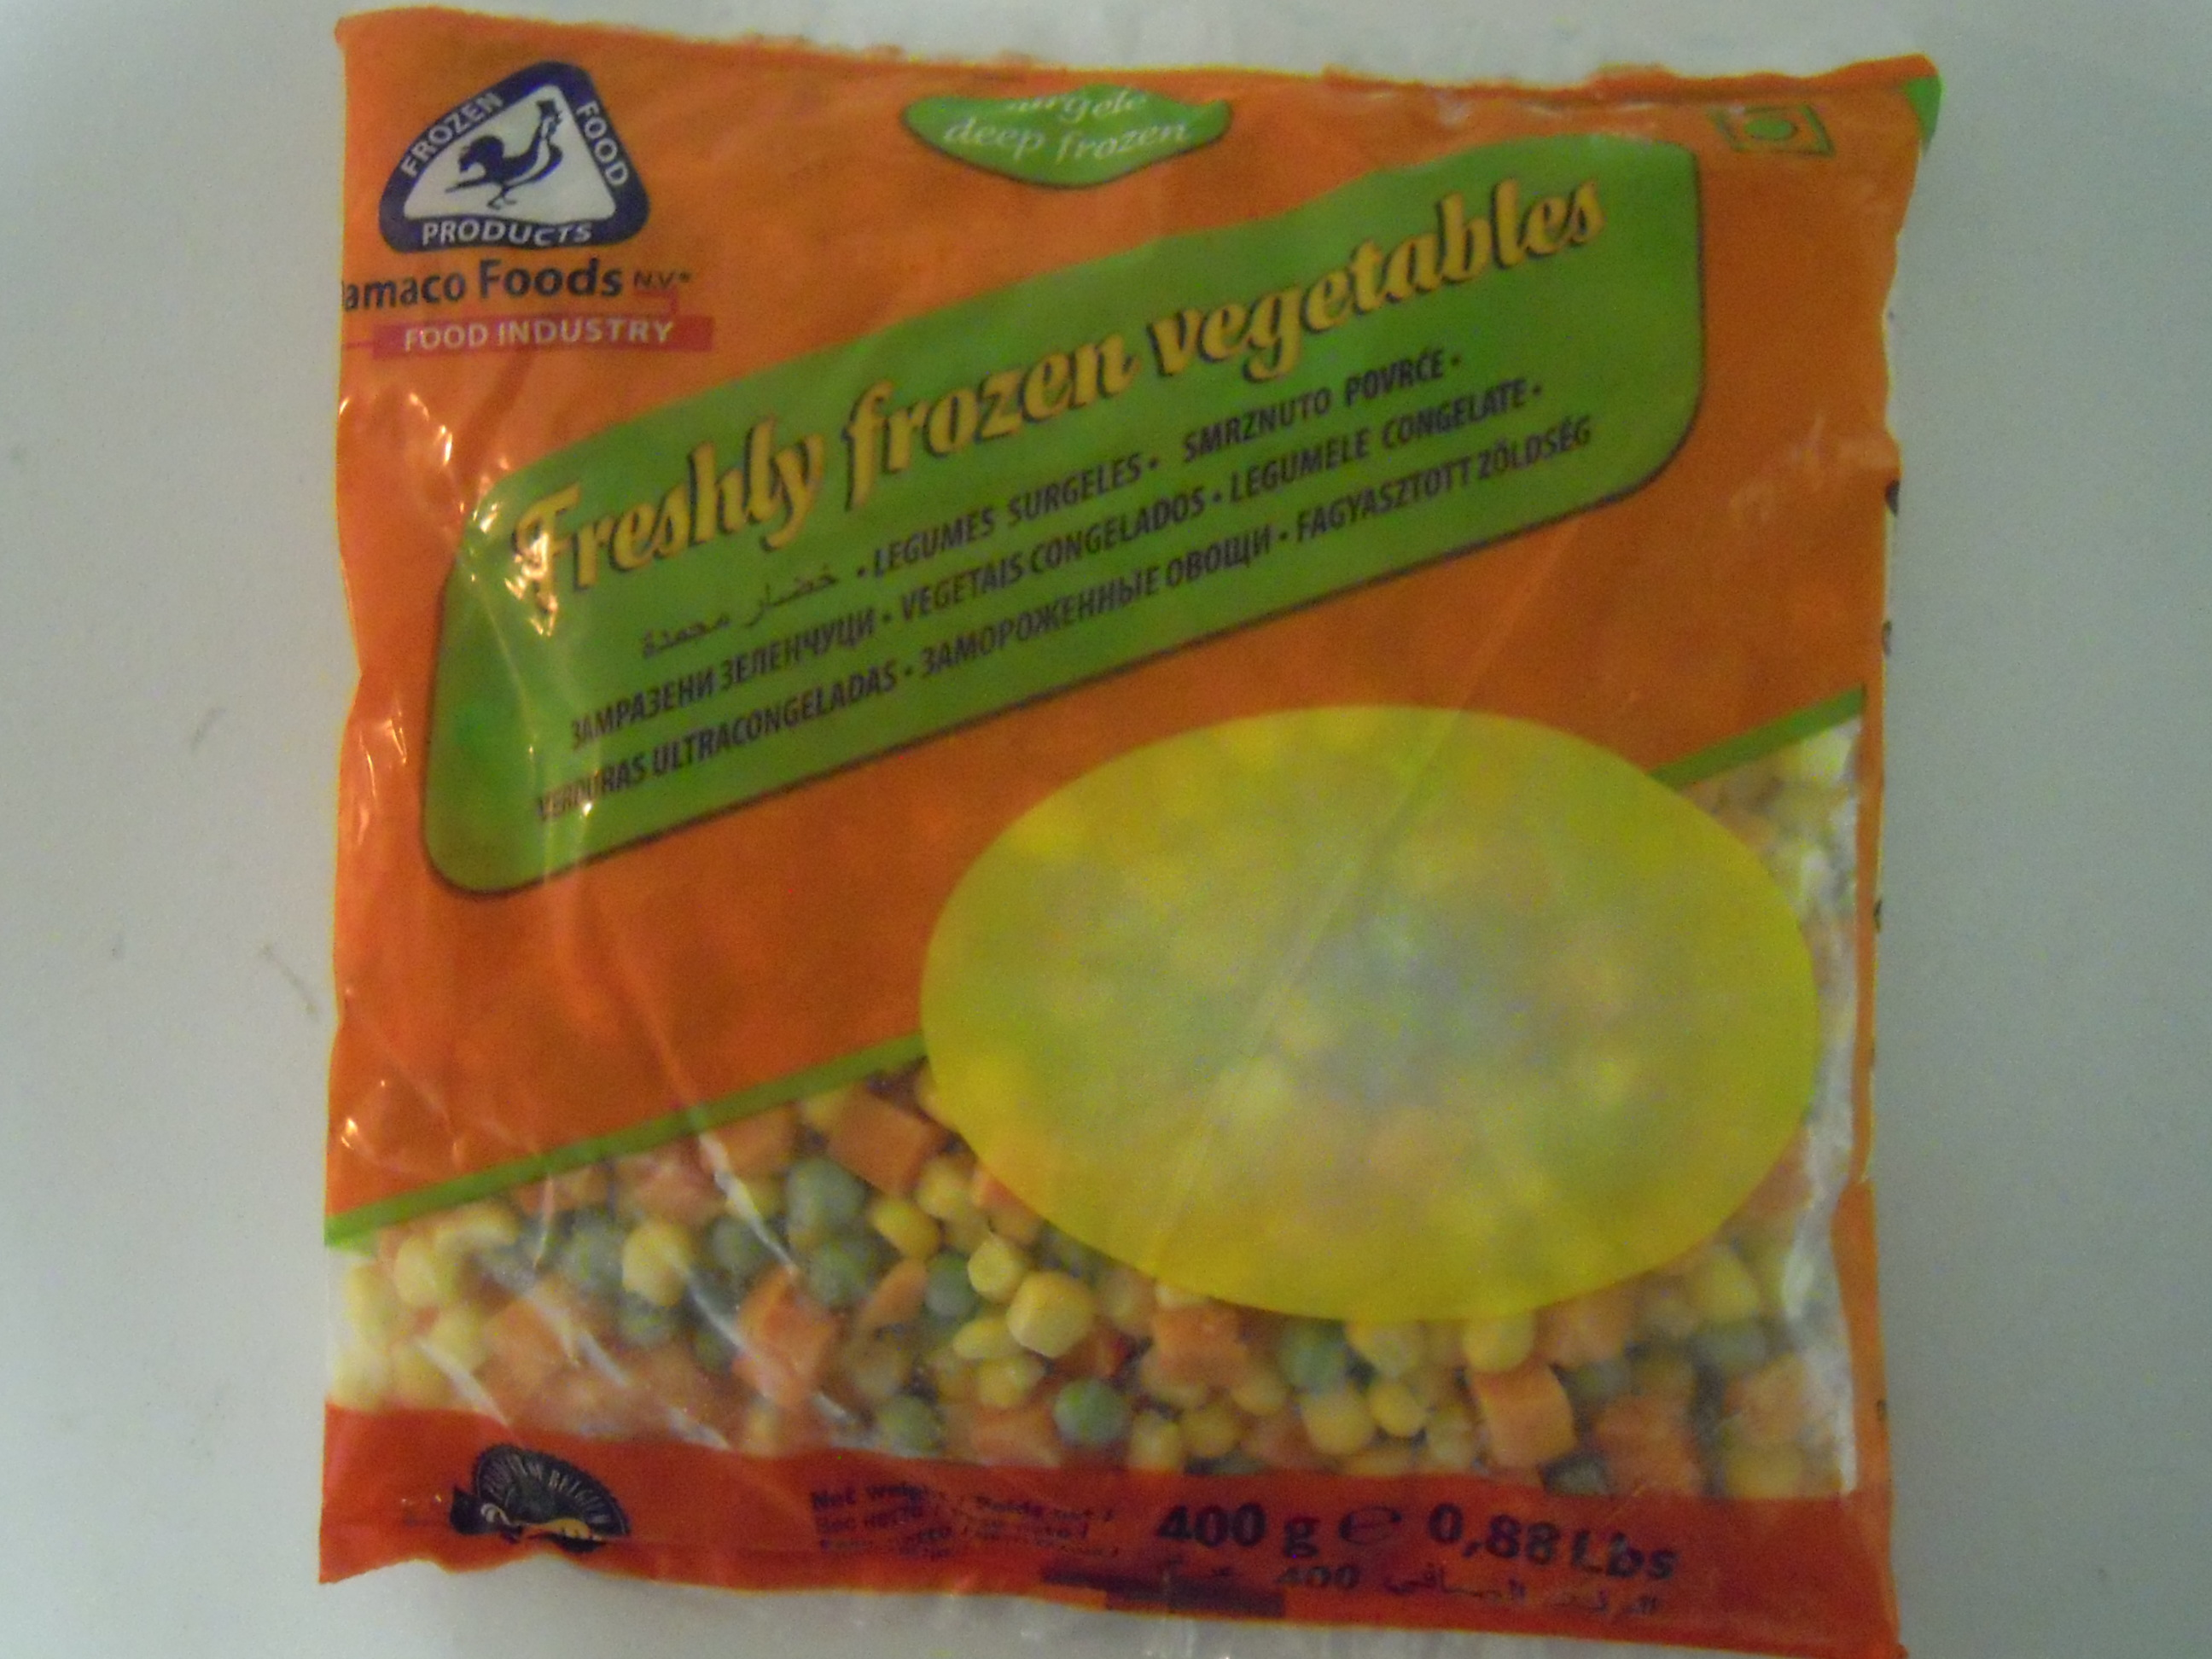 3 way mix vegetables damaco brand packaging